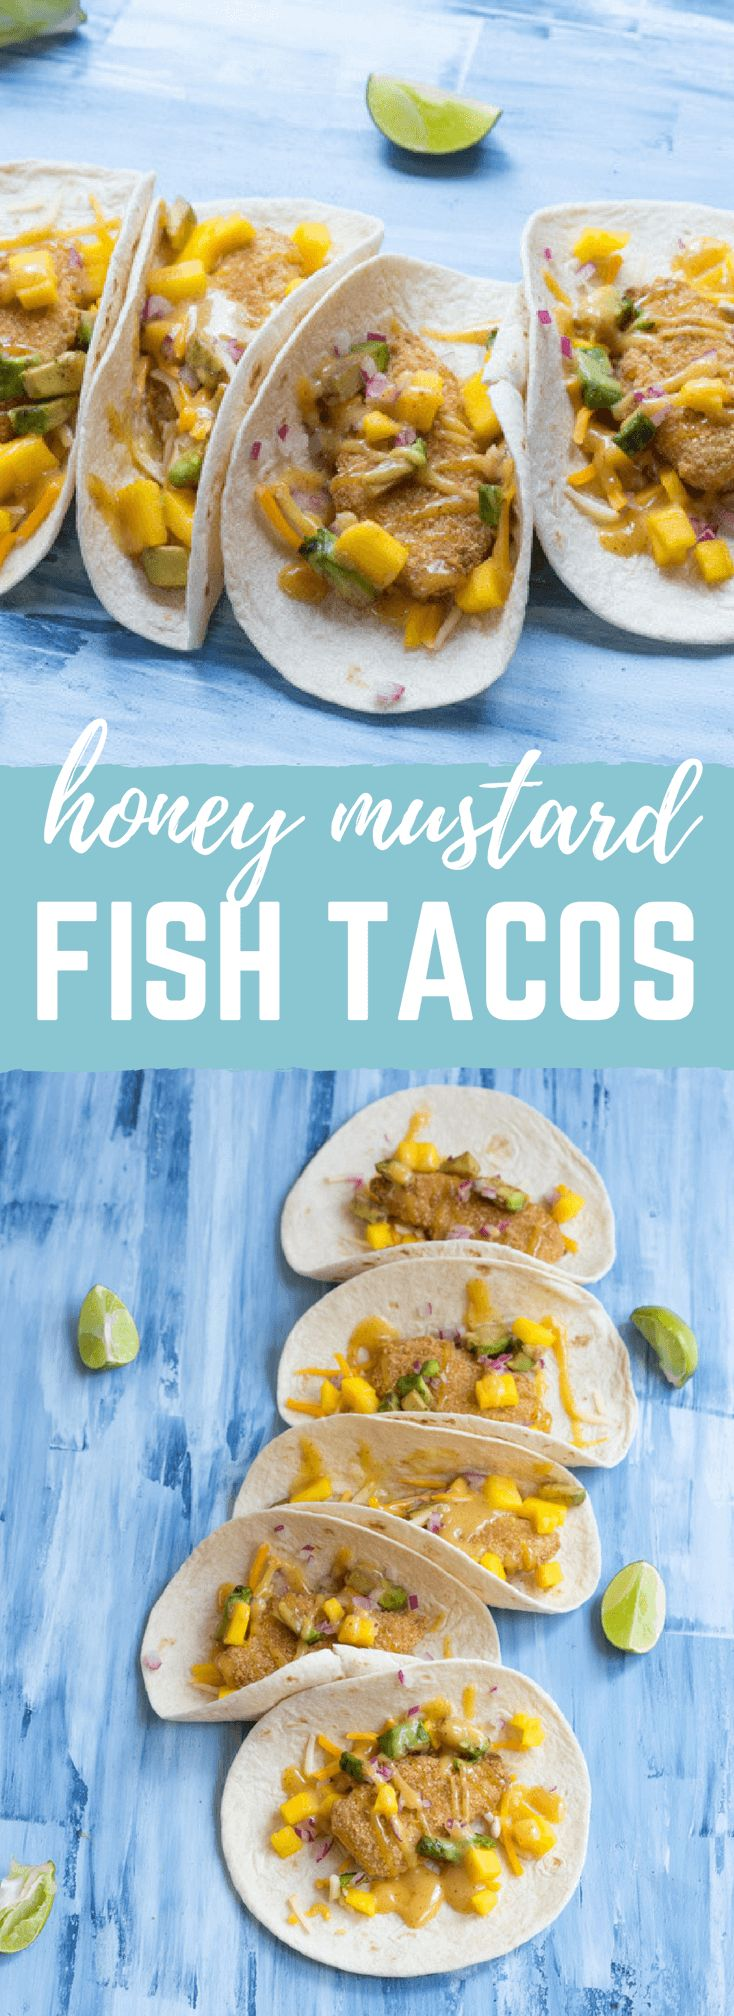 Honey Mustard Fish Tacos made with wild caught pollock tenders, onion, mango, avocado, and cheese nestled in a tortilla and drizzled with honey mustard! A tasty dinner on the table in less than 20 minutes.